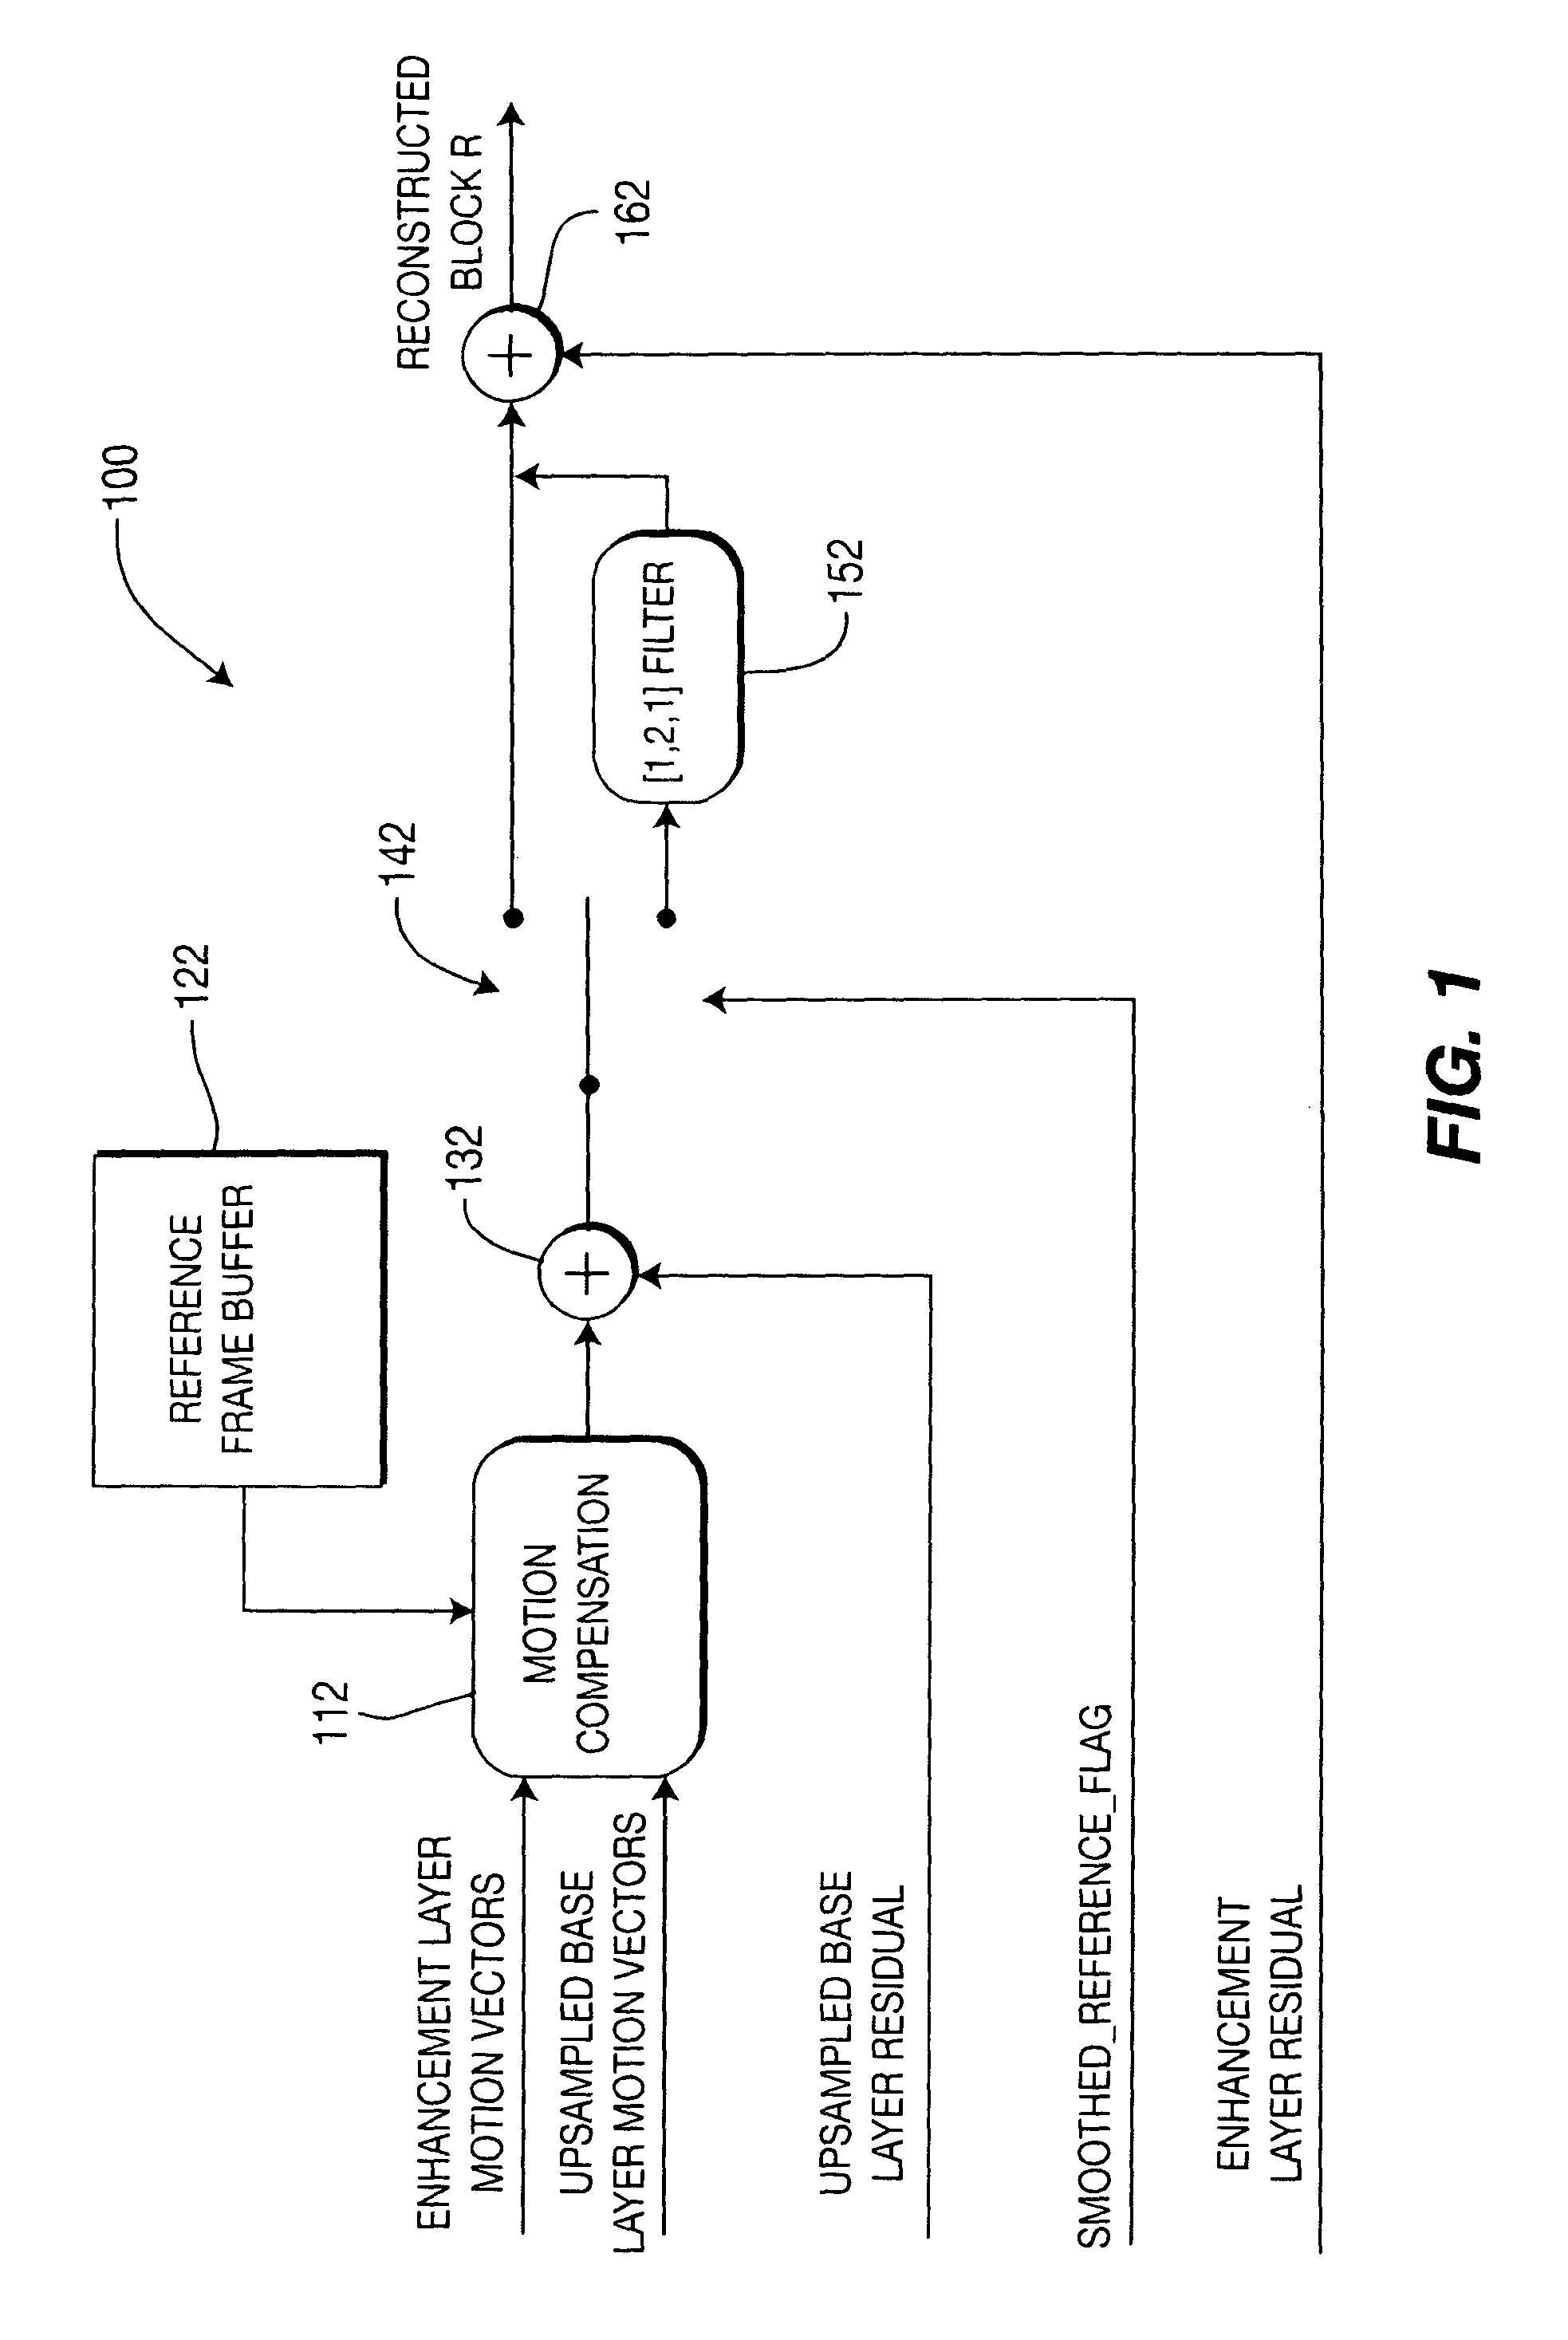 Patent Us8385412 Method And Apparatus For Inter Layer Residue State Diagrams Seilevel Drawing